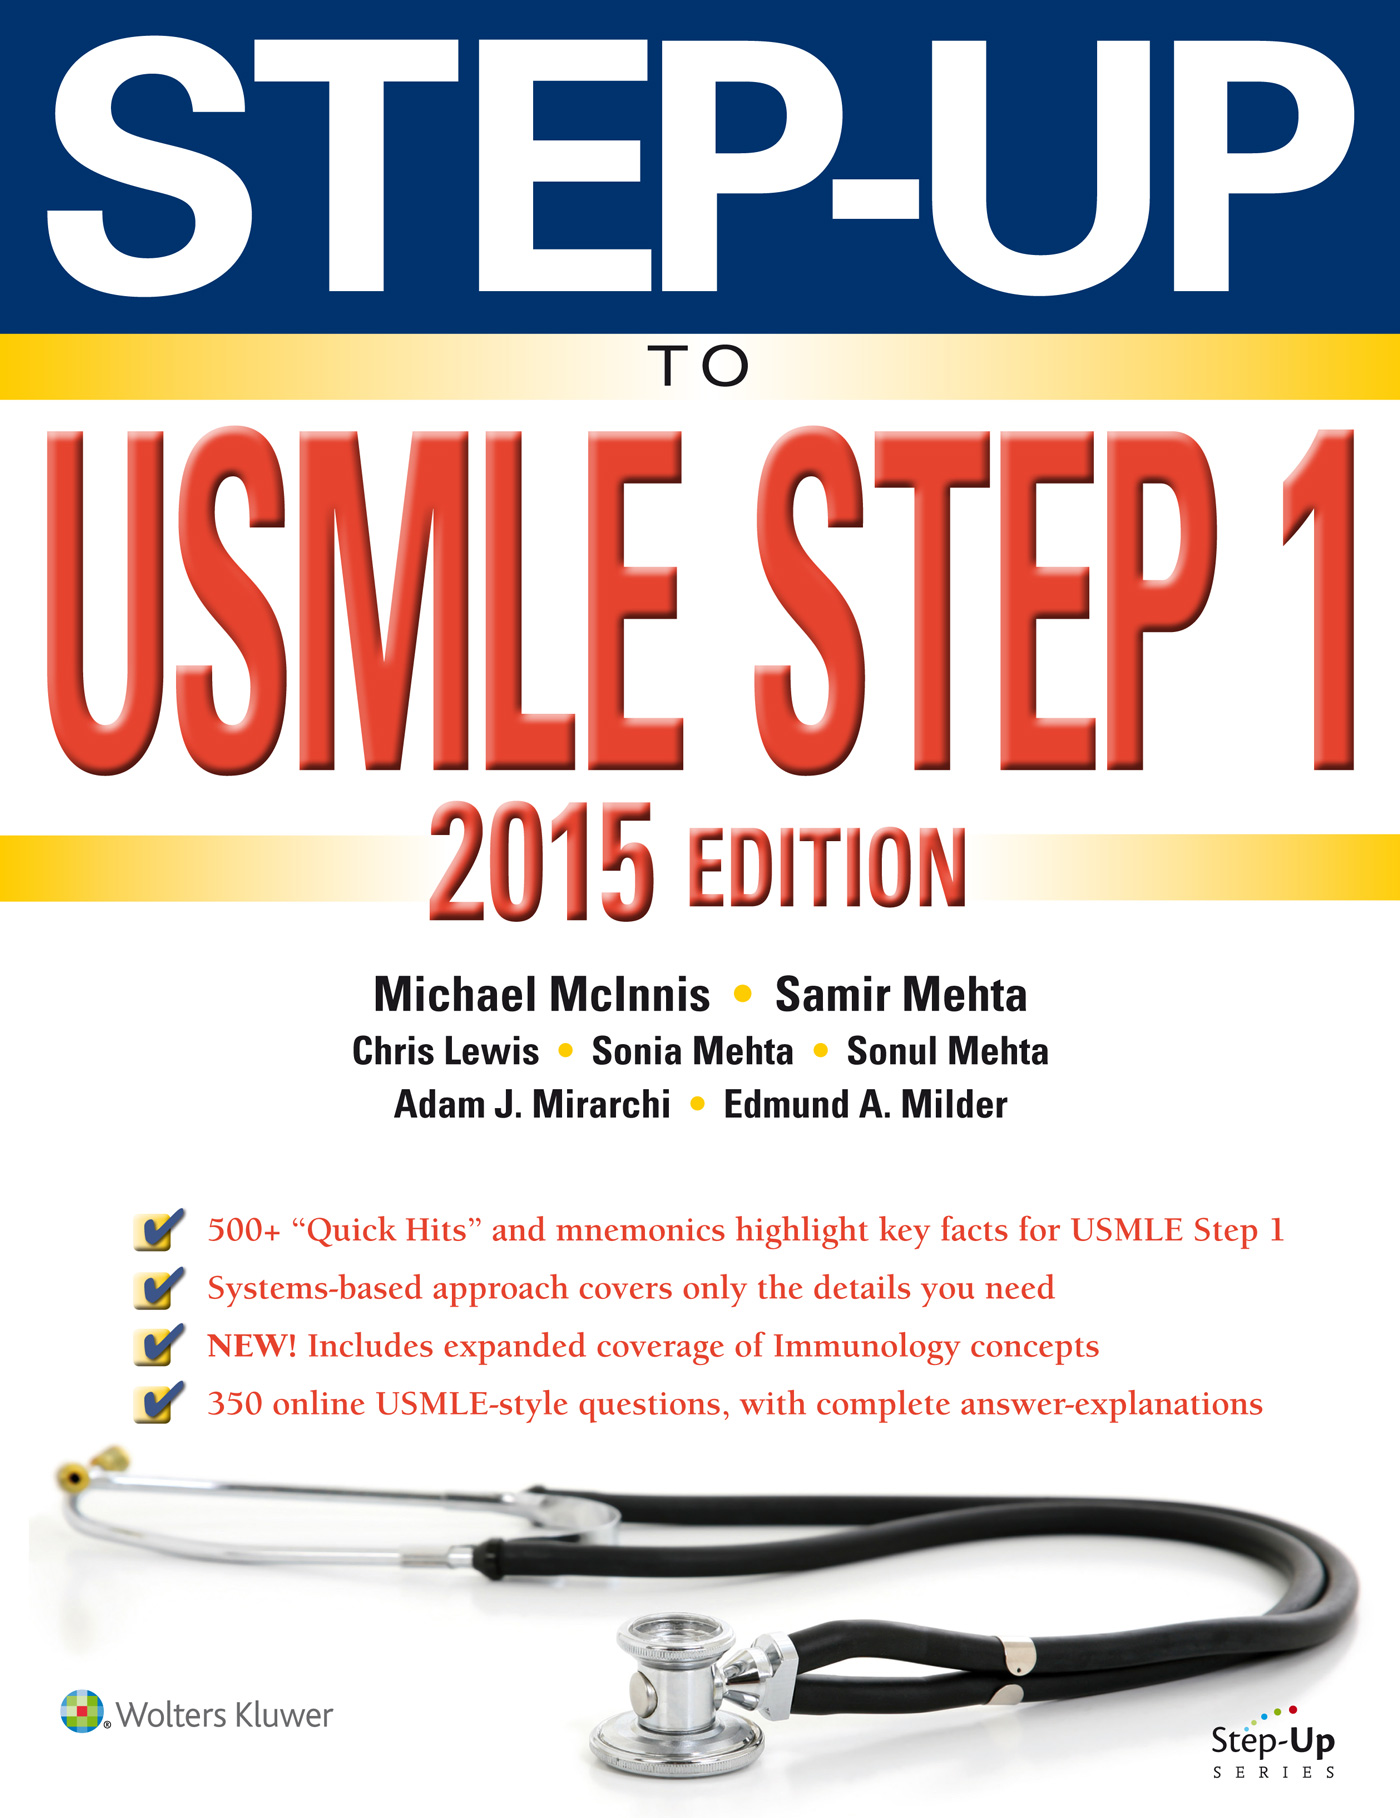 Books For Usmle - 100 Textbooks | Zookal